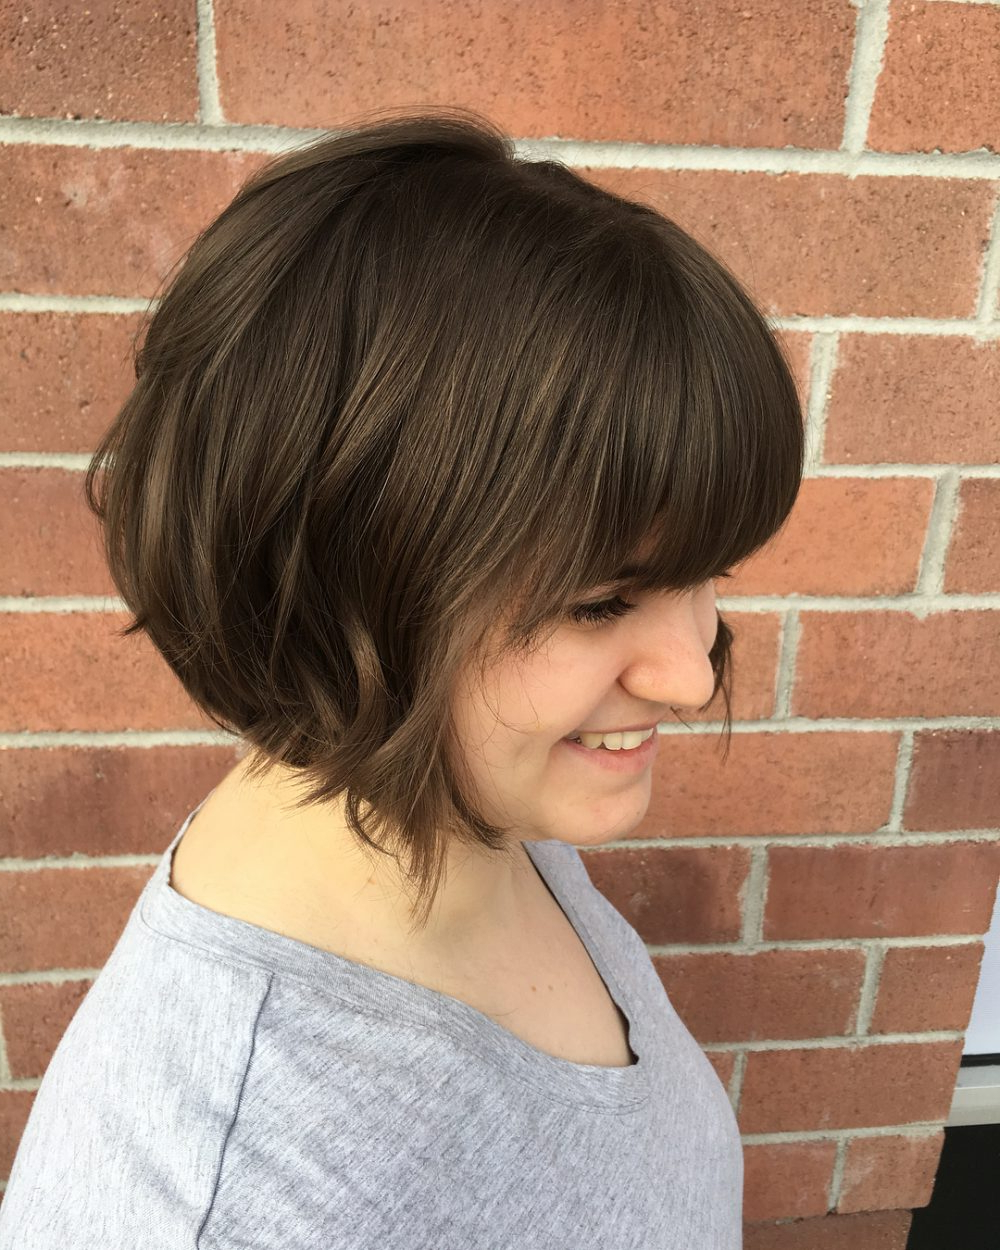 34 Greatest Short Haircuts And Hairstyles For Thick Hair For 2018 With Regard To Wavy Messy Pixie Hairstyles With Bangs (View 8 of 20)